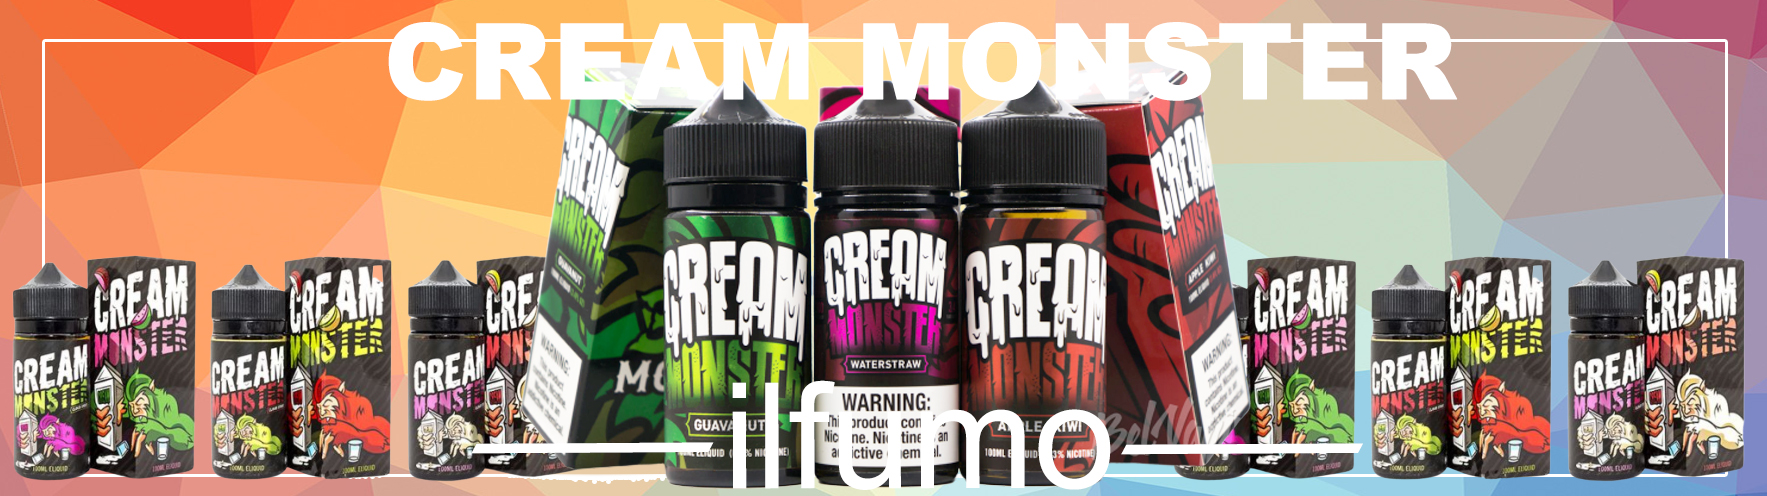 ilfumo cream monster 1 - Жидкость Cream Monster